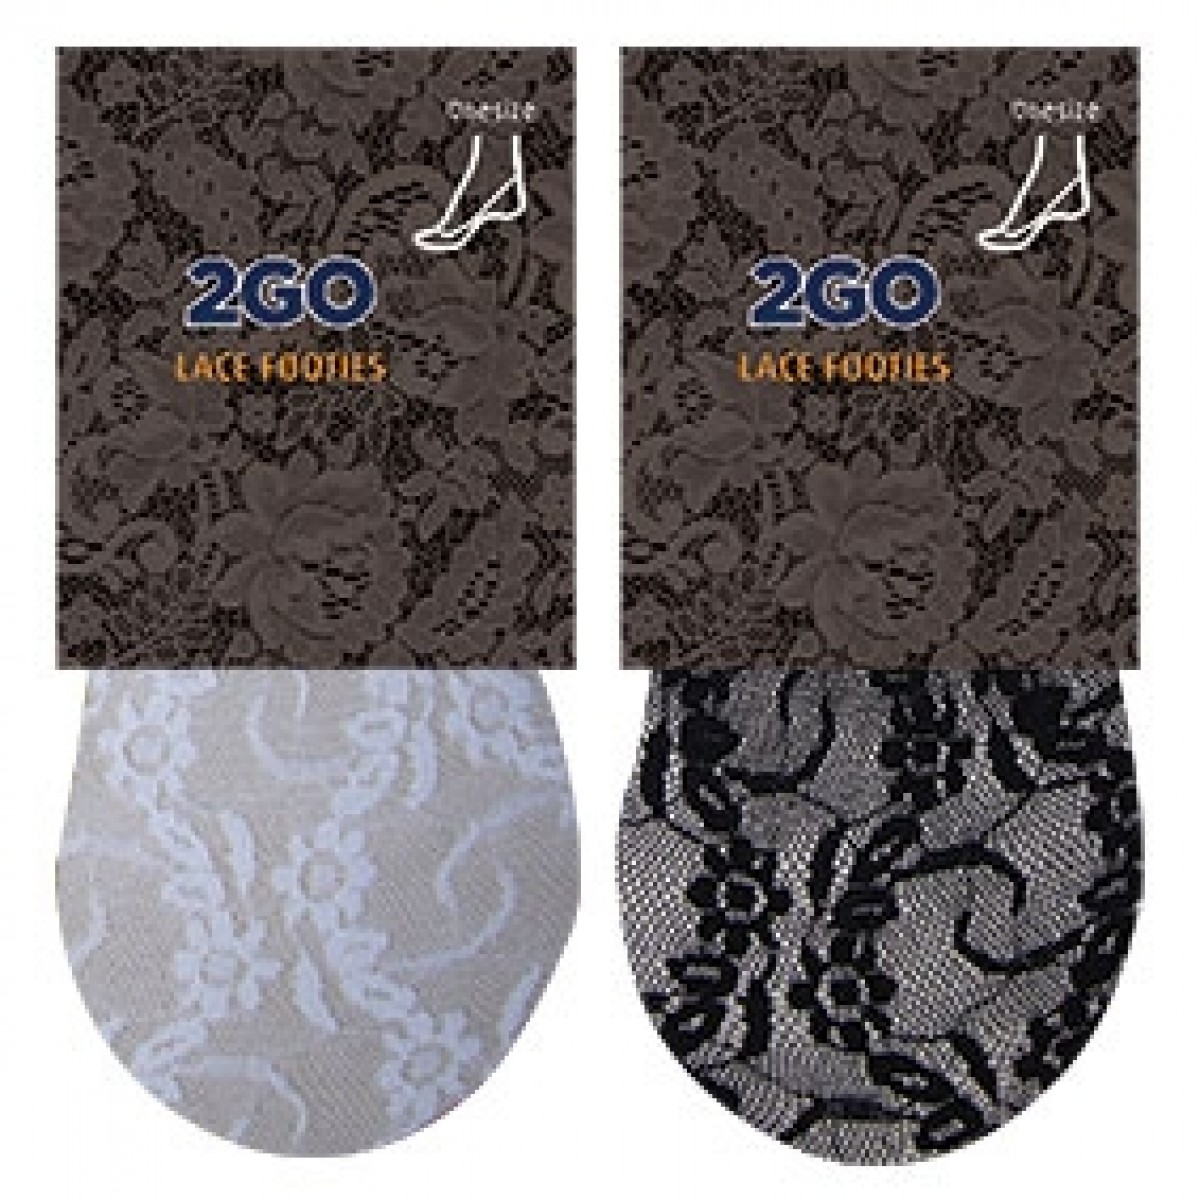 2GO Lace Footies One Size-35